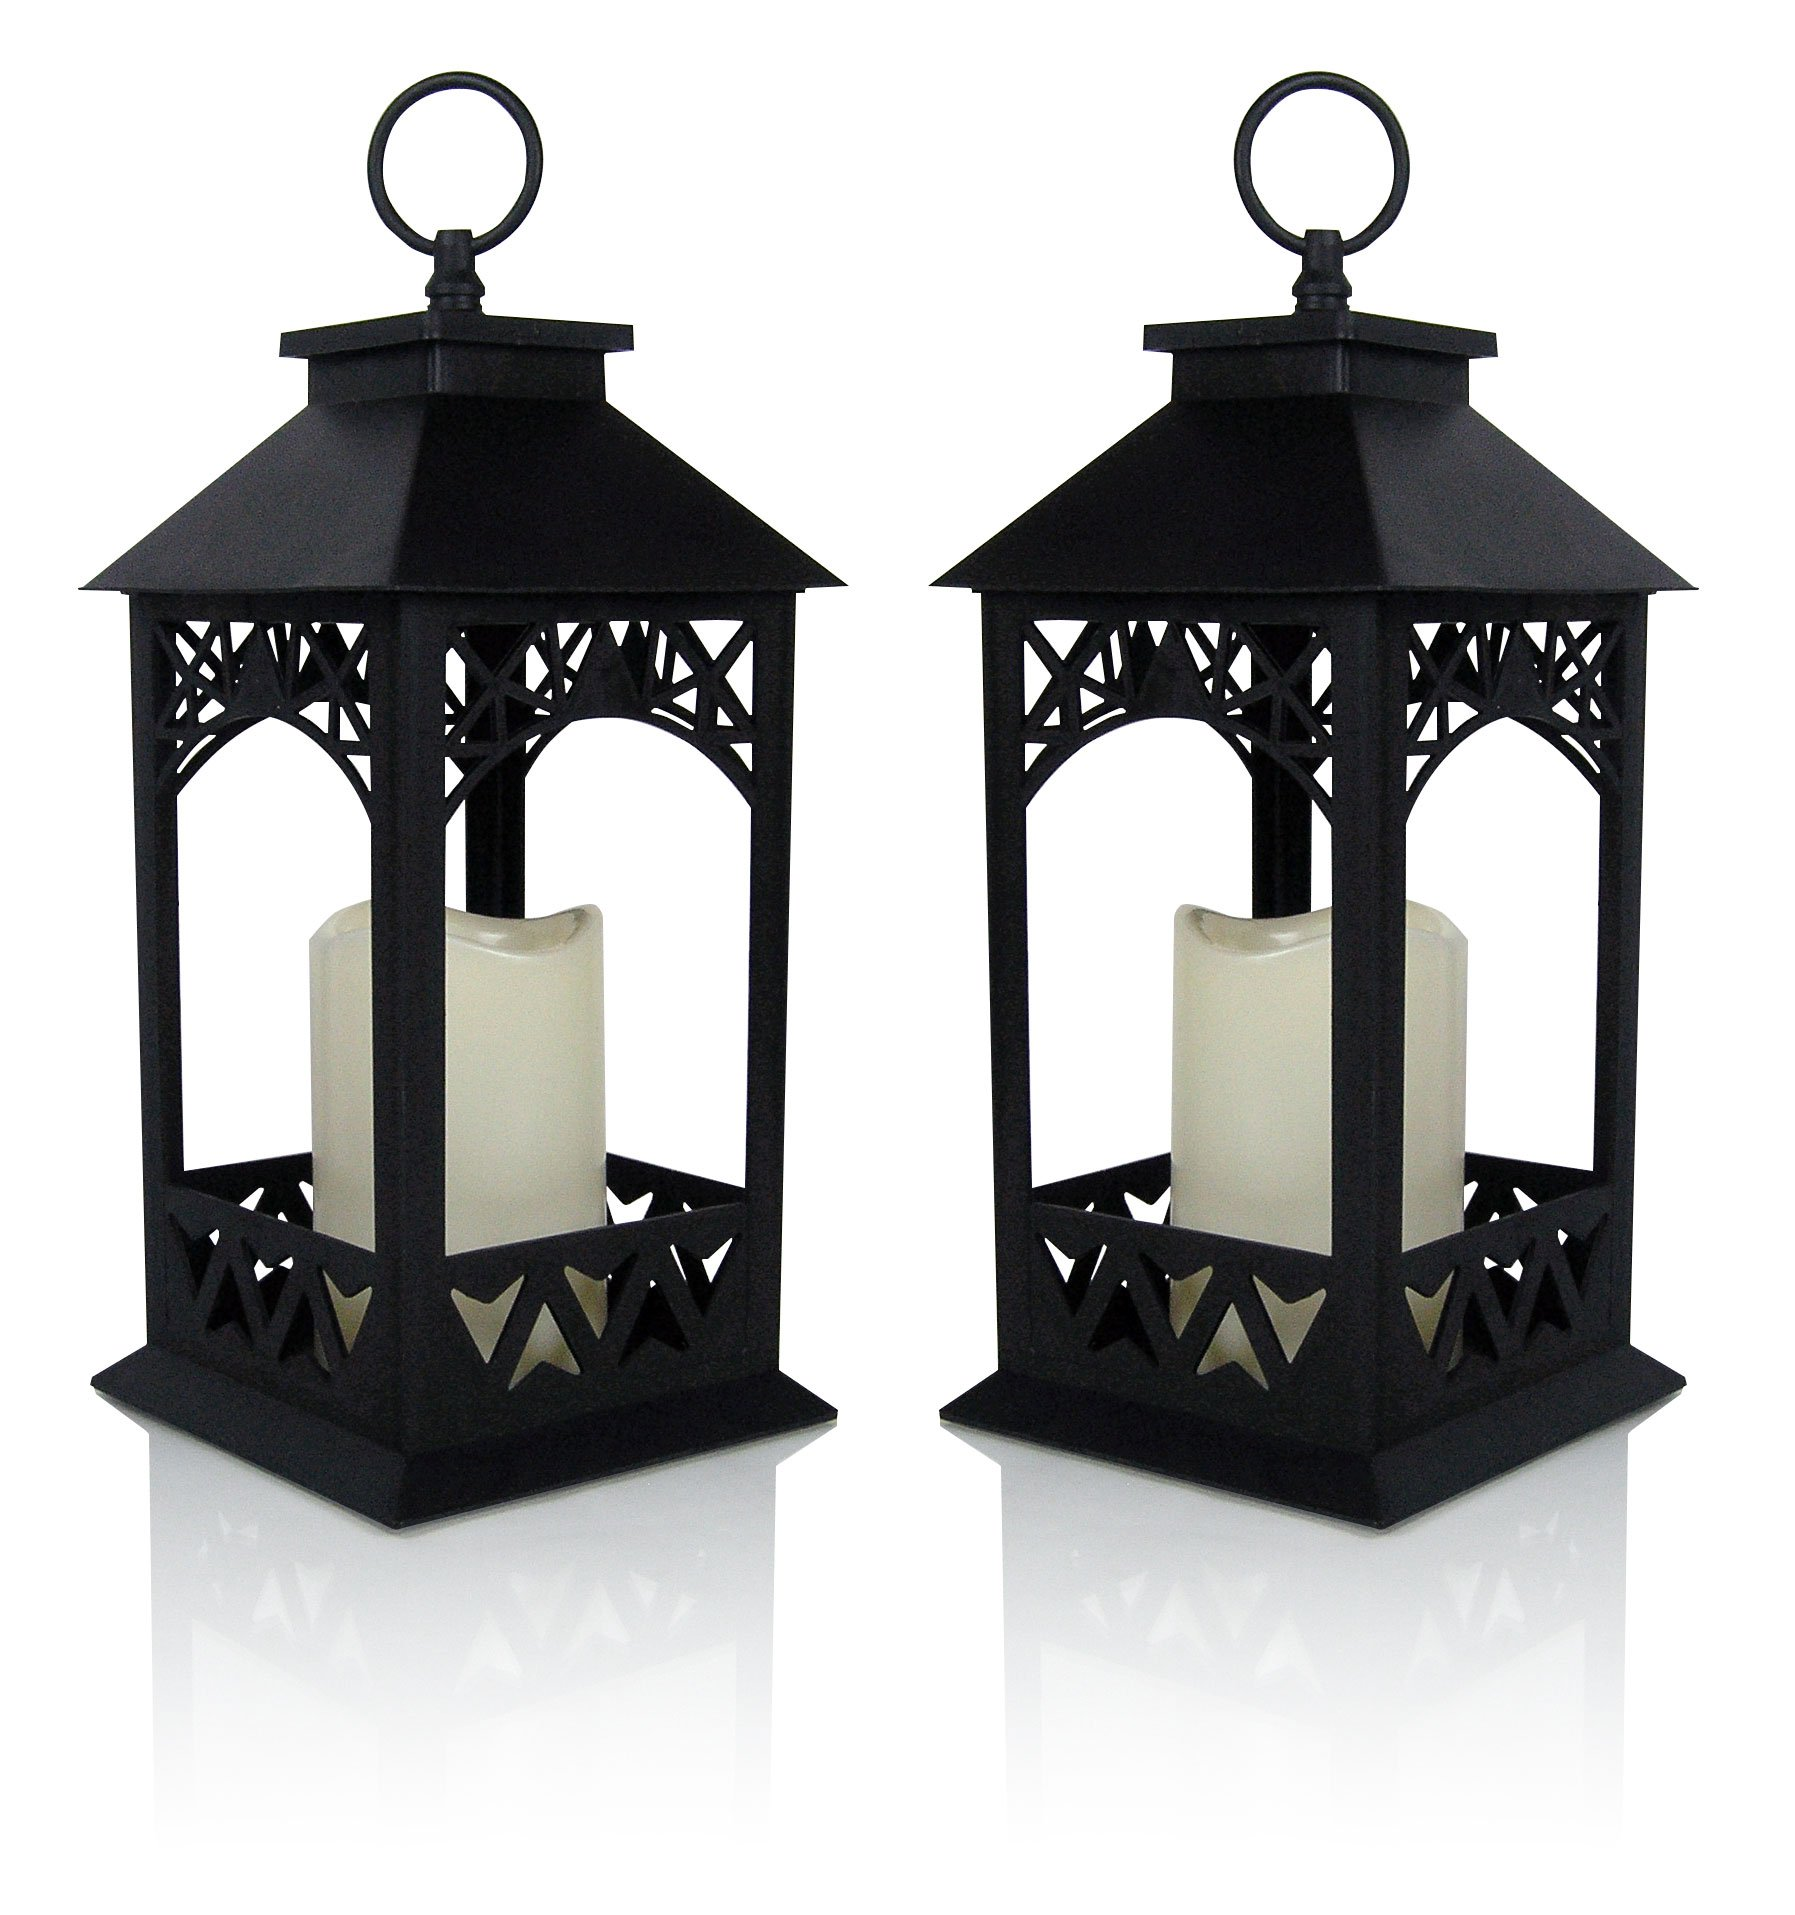 Decorative Lanterns   Set Of 2 Black Lantern With LED Pillar Candle And A 5  Hour